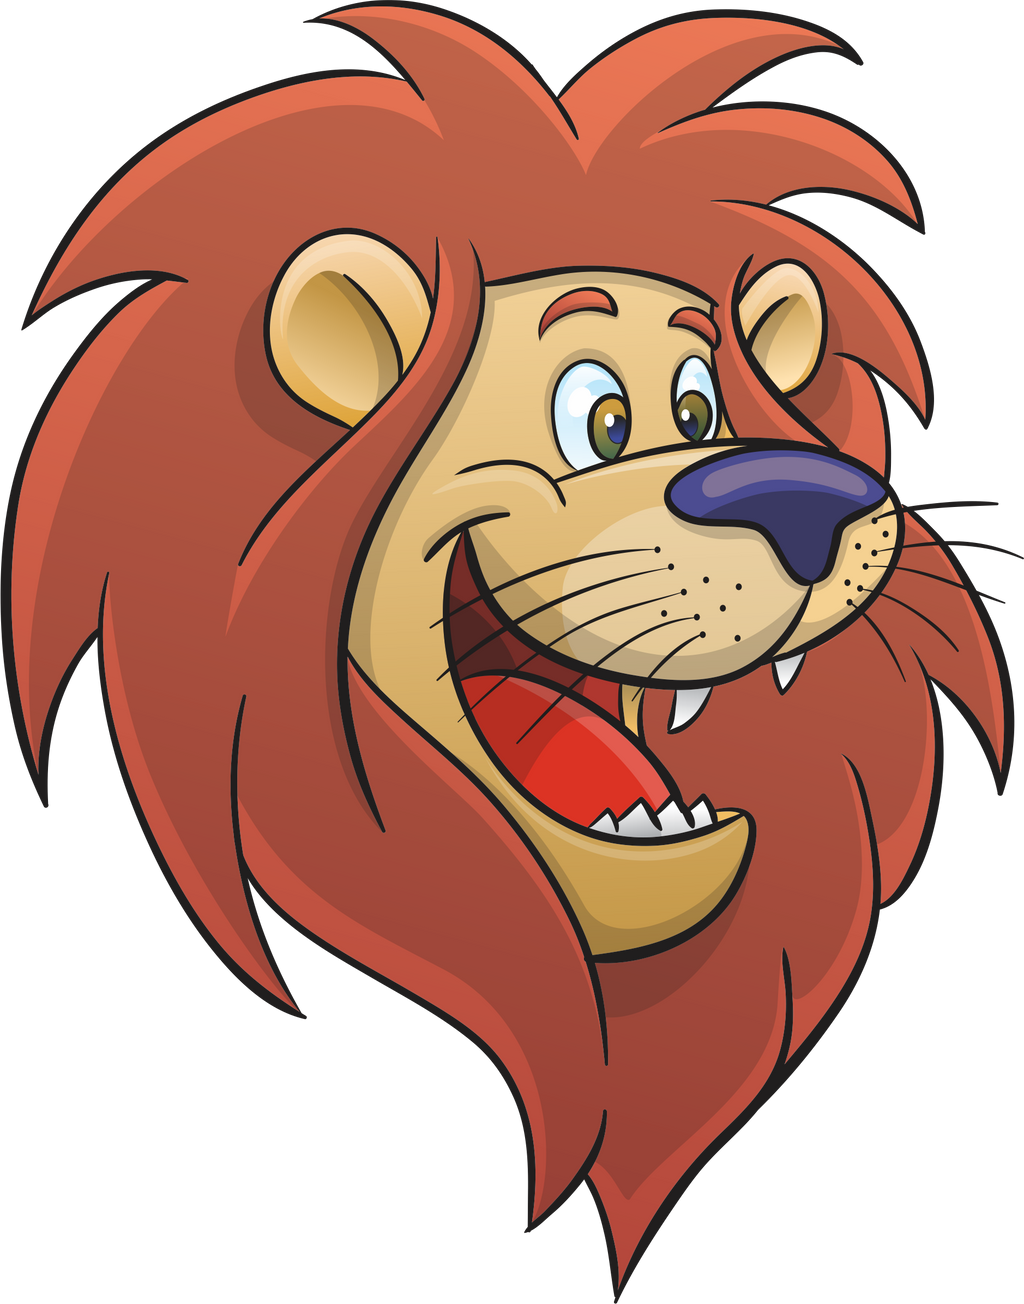 Cartoon lion face by alexmarques d47pewg